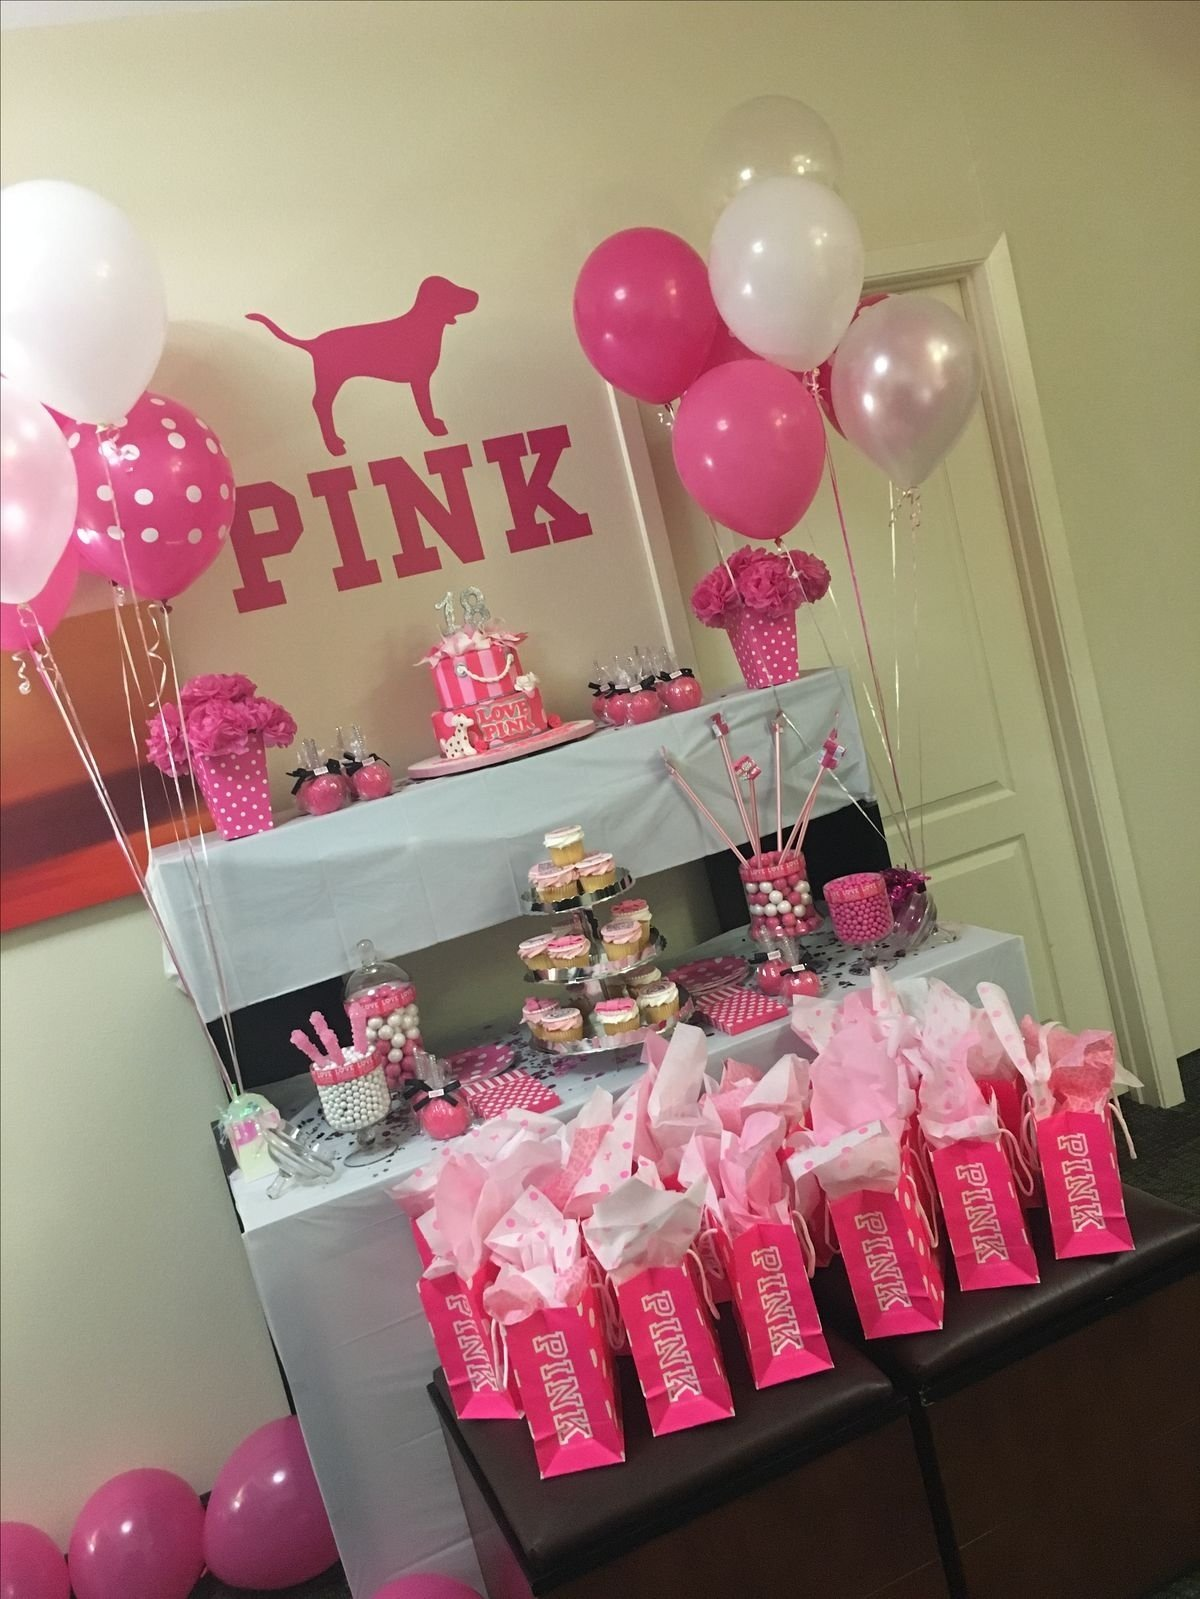 10 Fashionable Girl 13 Birthday Party Ideas Themes 15th For Boy With